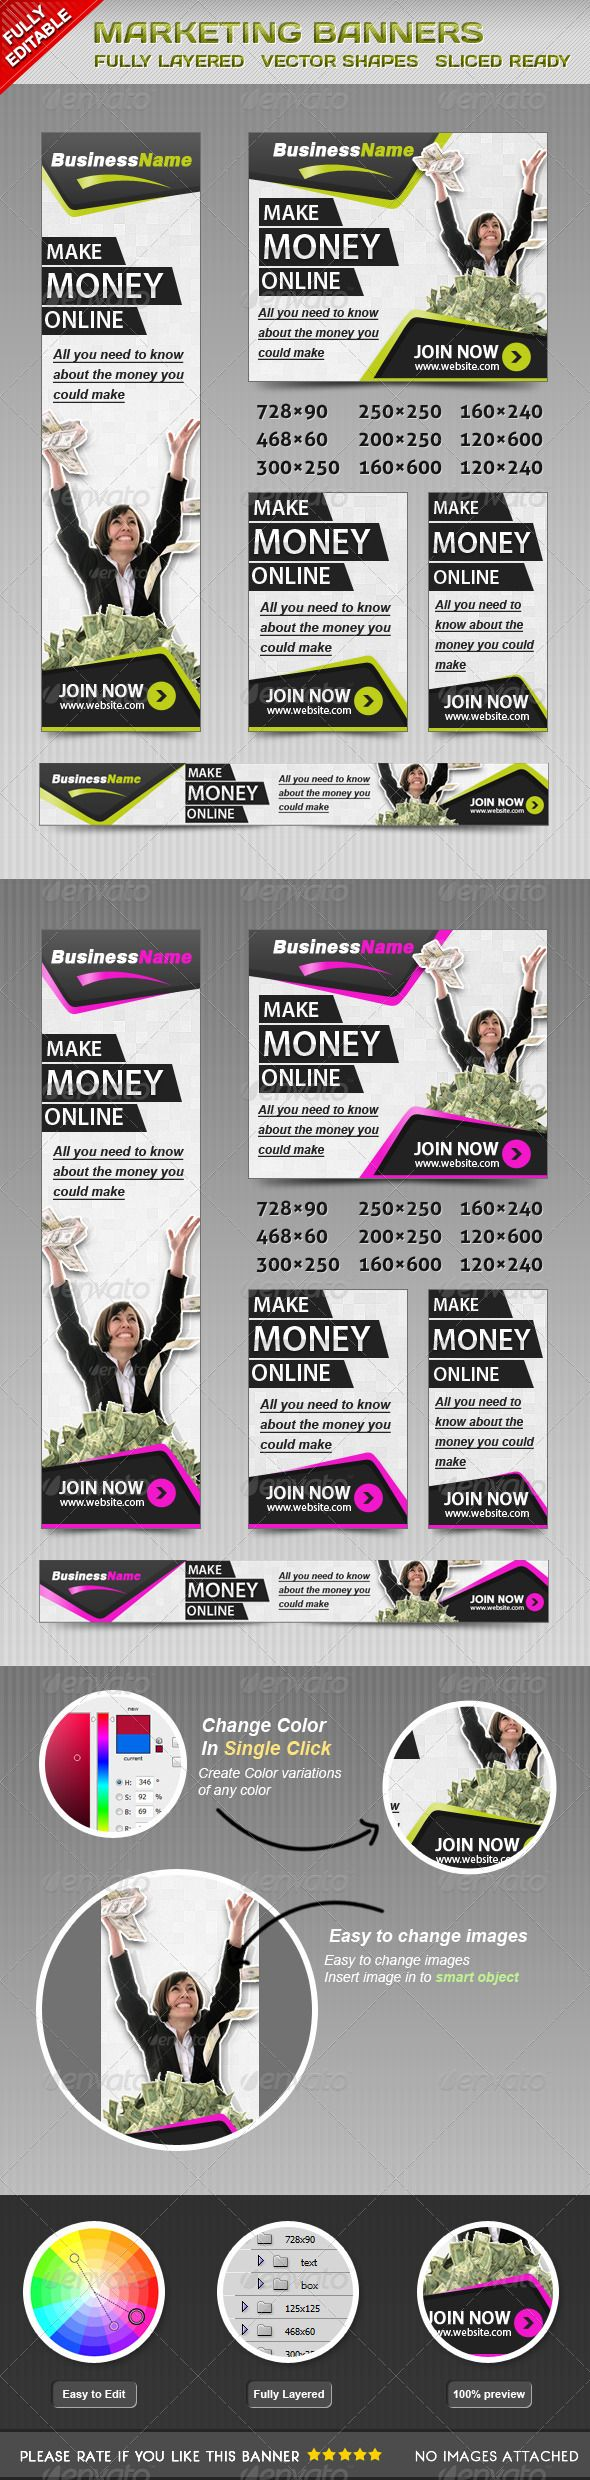 Marketing Web Banners Template PSD   Buy and Download: http://graphicriver.net/item/marketing-banners/4584147?WT.ac=category_thumb&WT.z_author=msrashdi&ref=ksioks